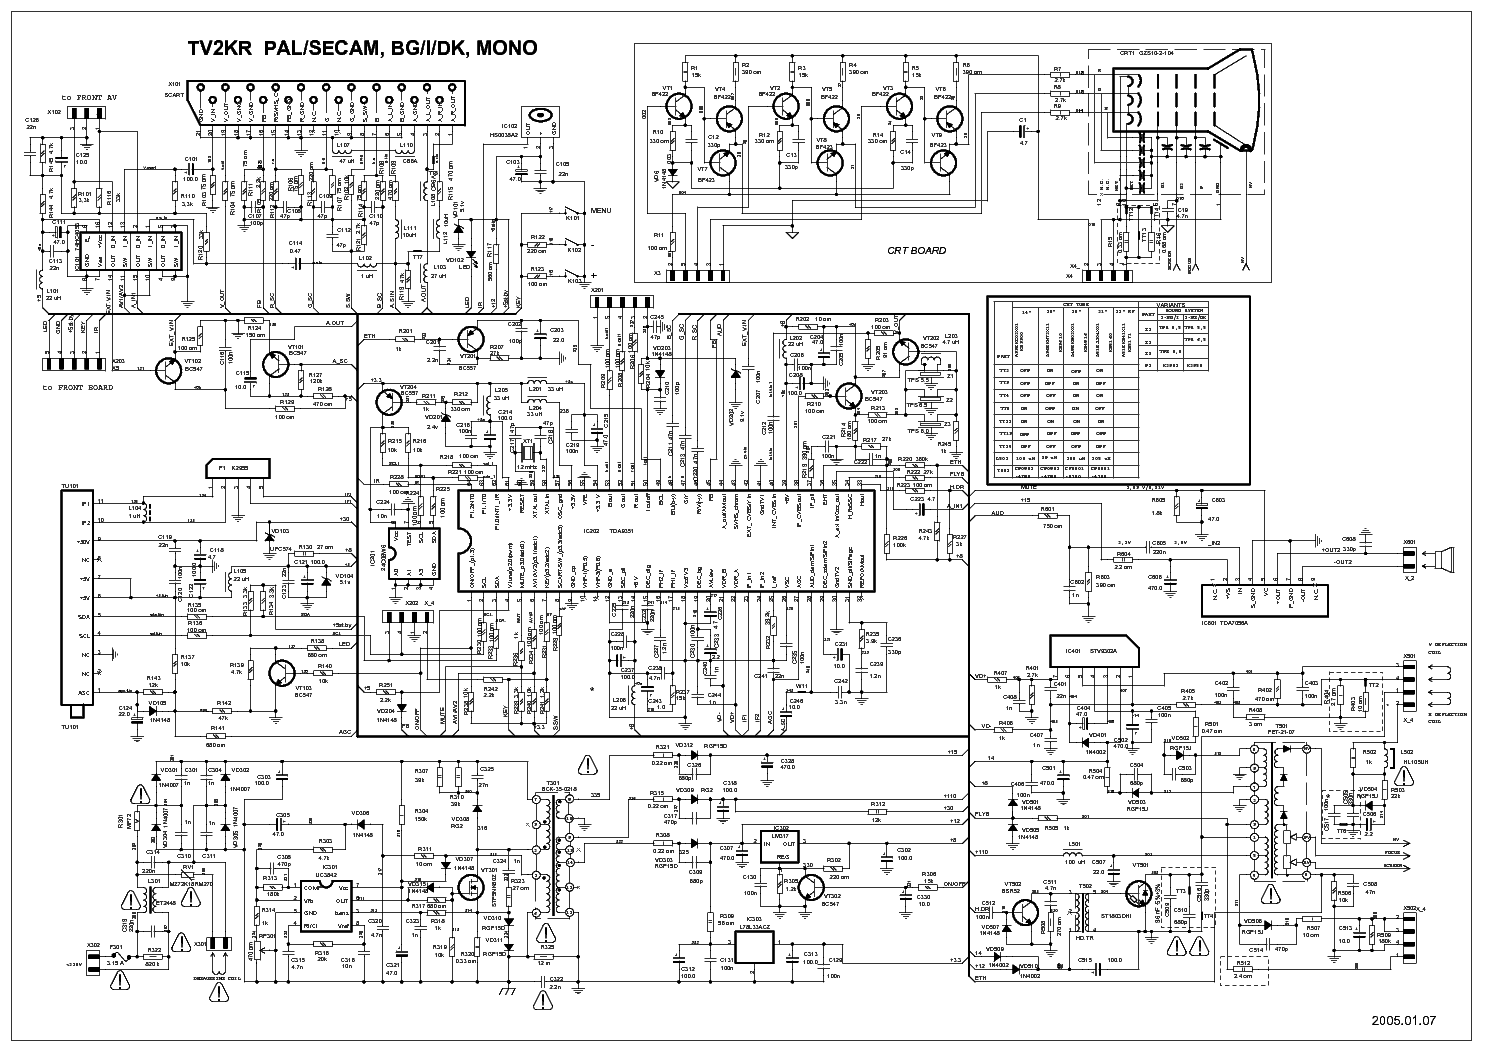 orion t2150stx 2136 chassis tv2kr service manual download  schematics  eeprom  repair info for